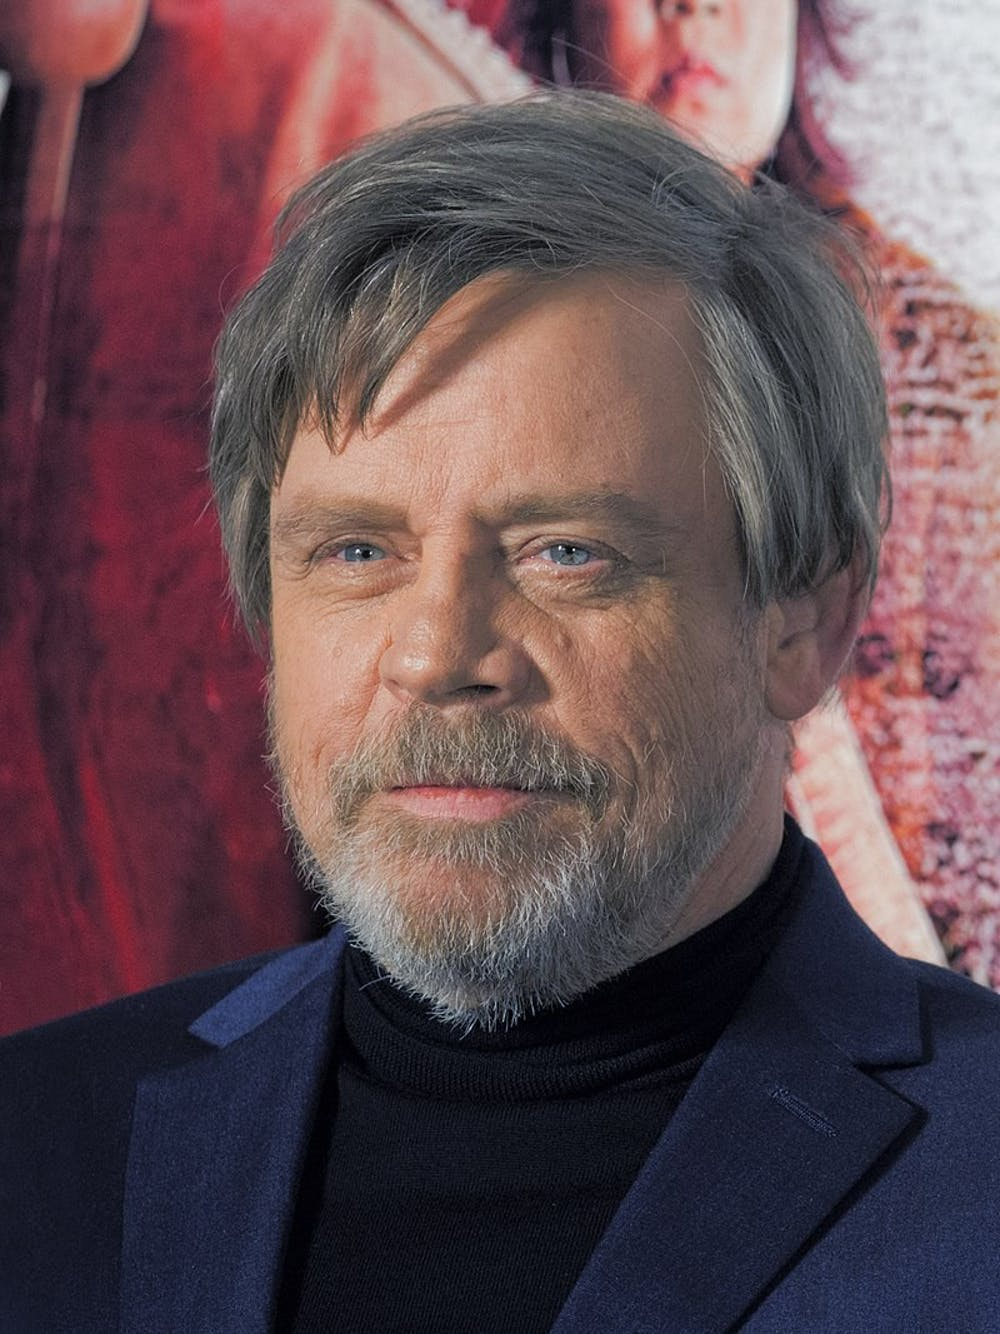 """<p>Mark Hamill reprises his role as Luke Skywalker in the final installment of the """"Star Wars"""" series, """"The Rise of Skywalker.""""</p>"""